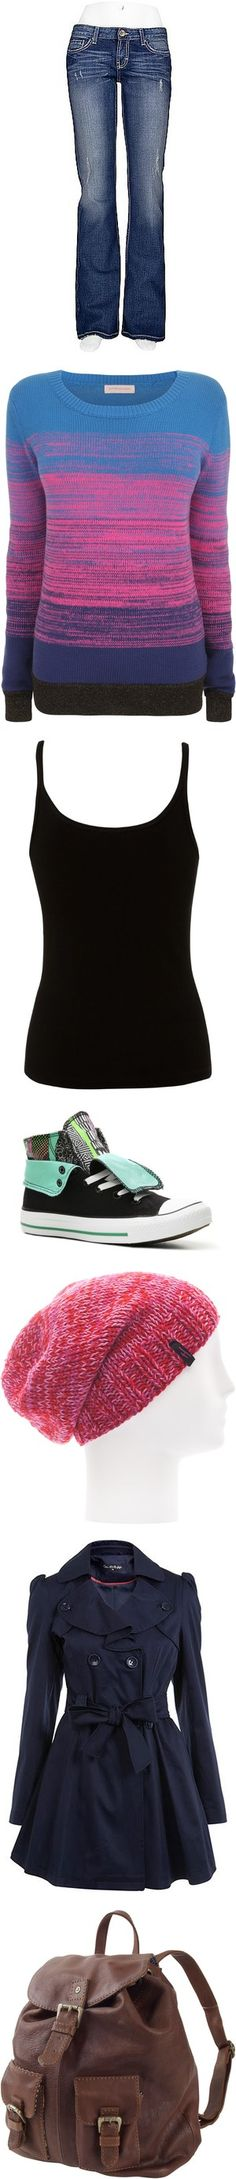 """theDoctor'sCompanion2"" by bethany-atwell on Polyvore"